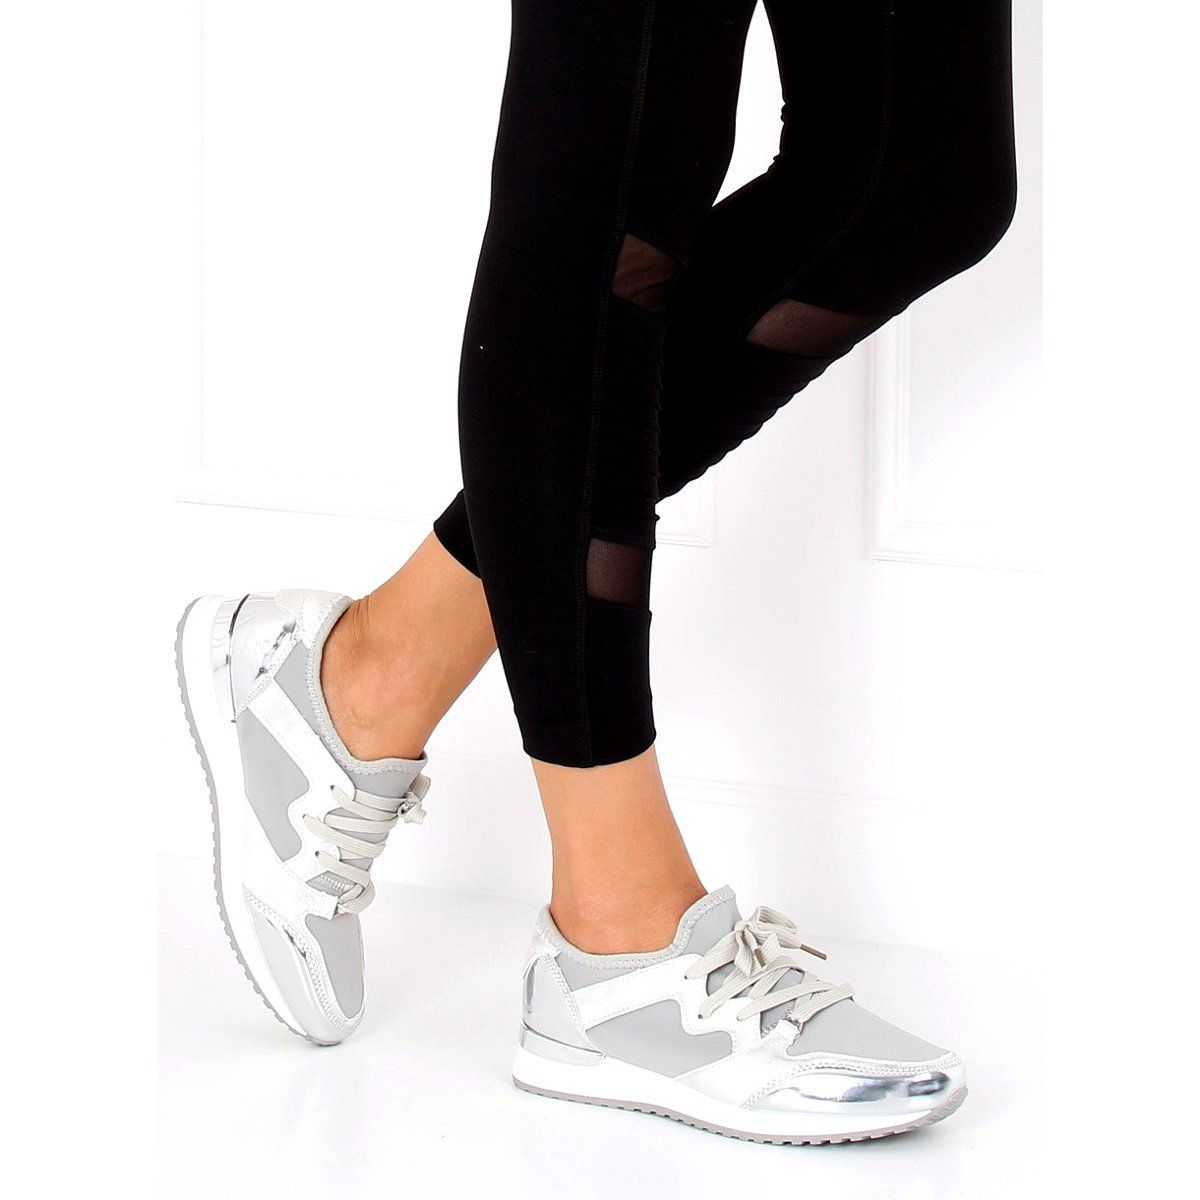 Silver 6241 Silver Sports Shoes Grey Shoes Sports Shoes Trainers Women